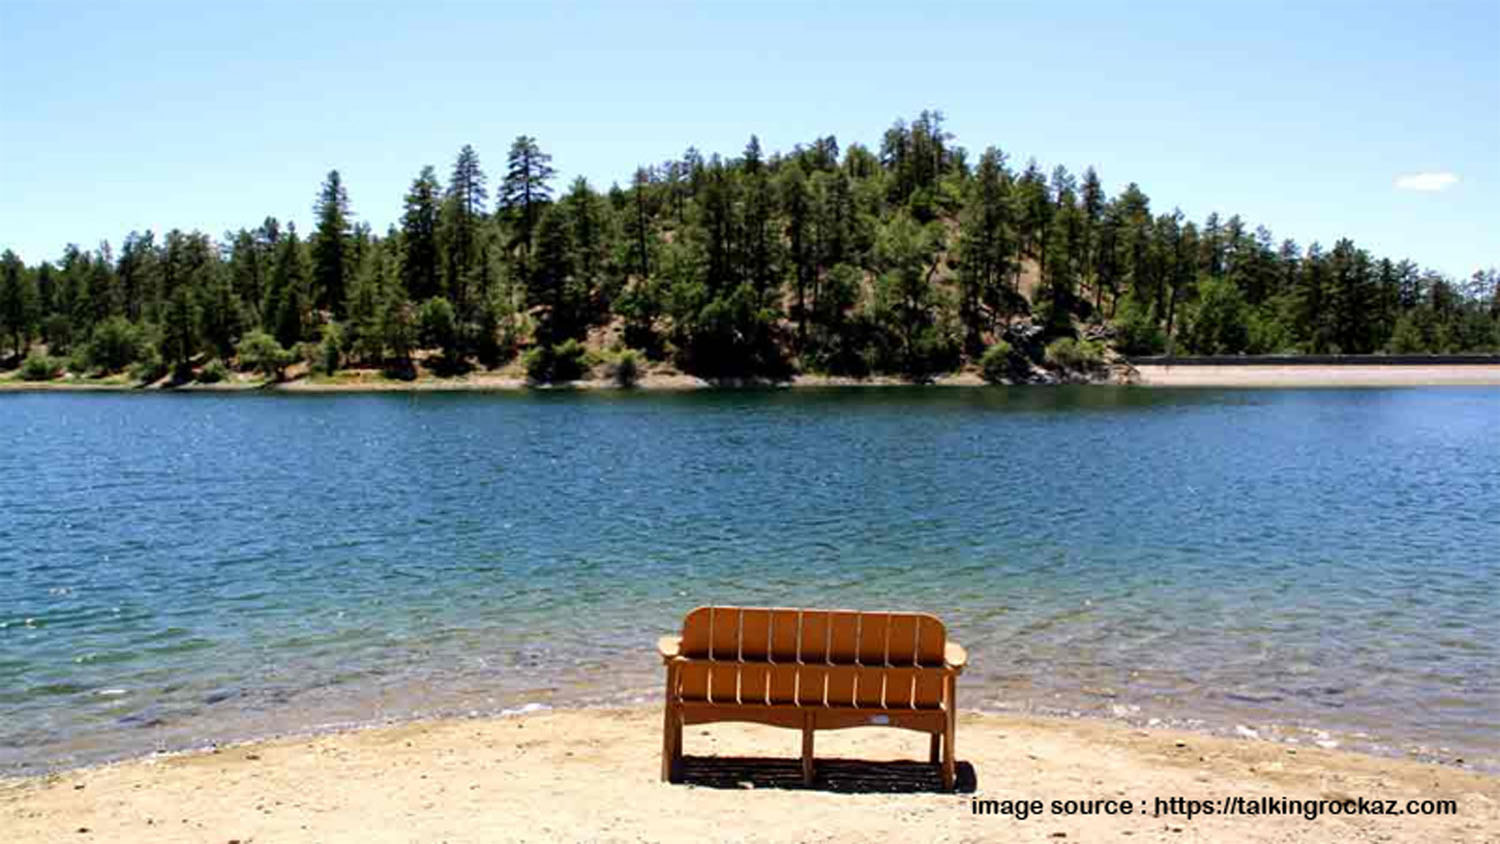 With Winter Arizona's Willow Beach Offers Mild Weather Outdoor Recreation